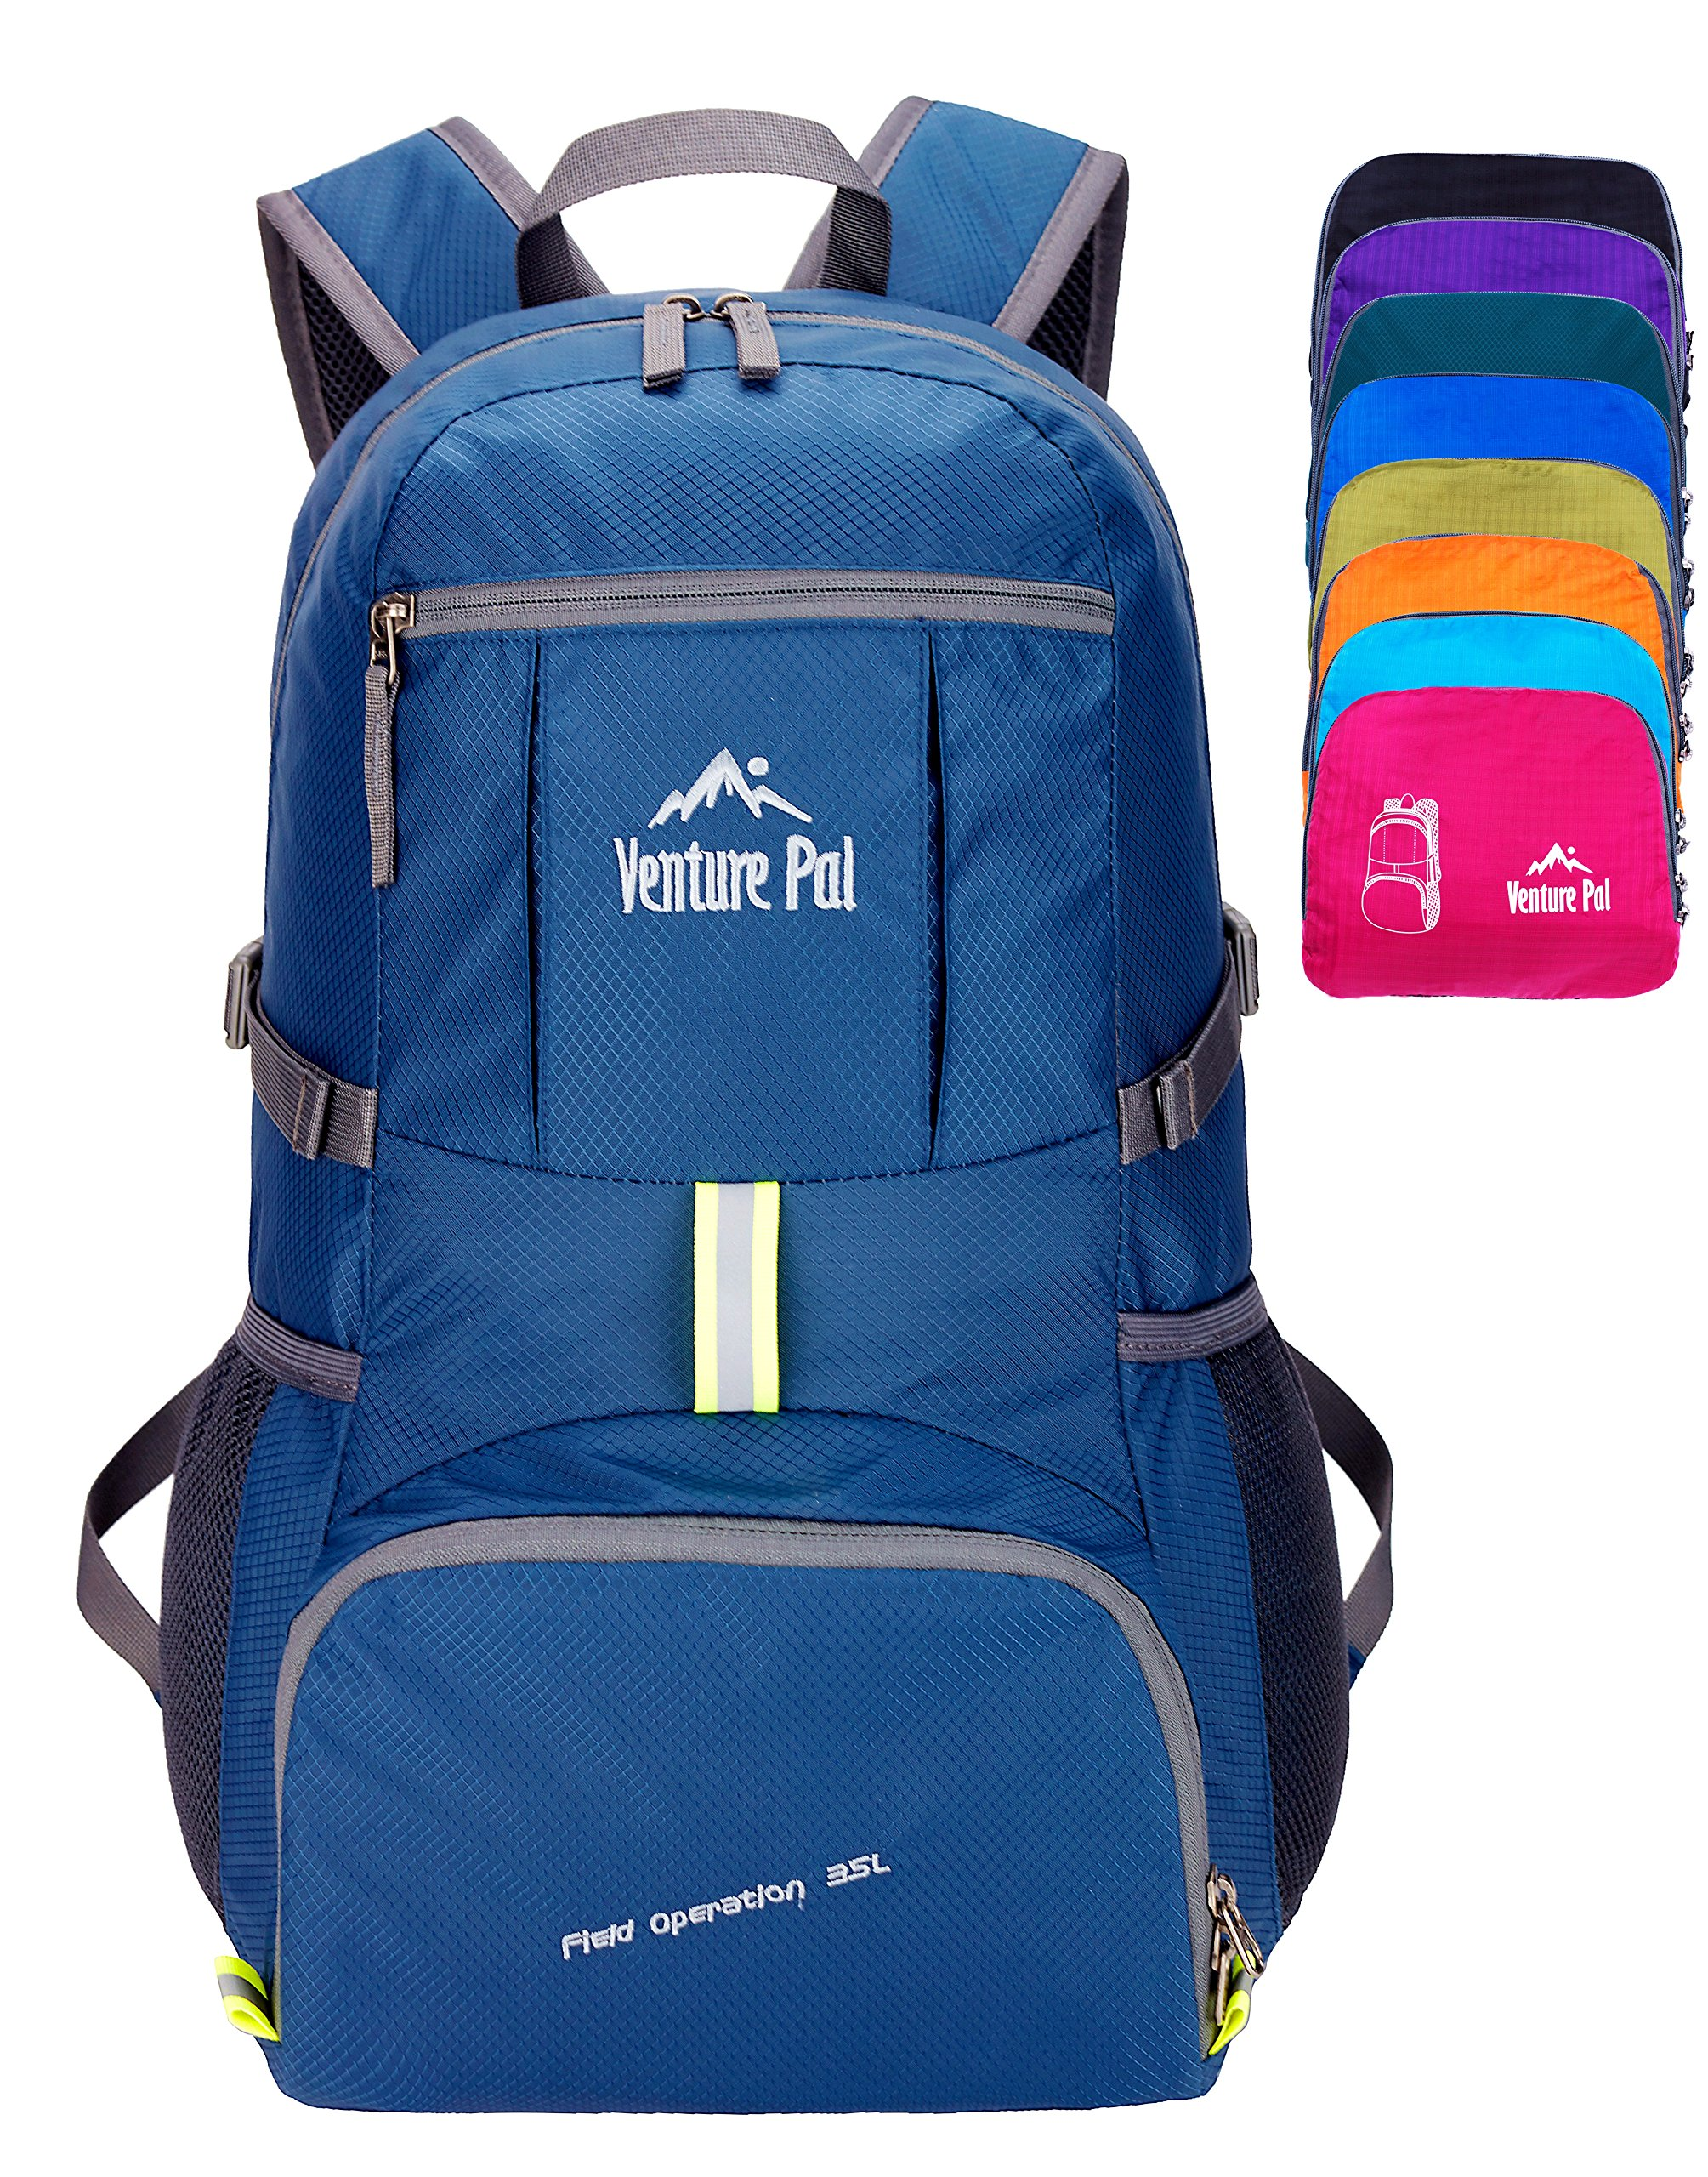 Venture Pal Lightweight Packable Durable Travel Hiking Backpack Daypack-NavyBlue